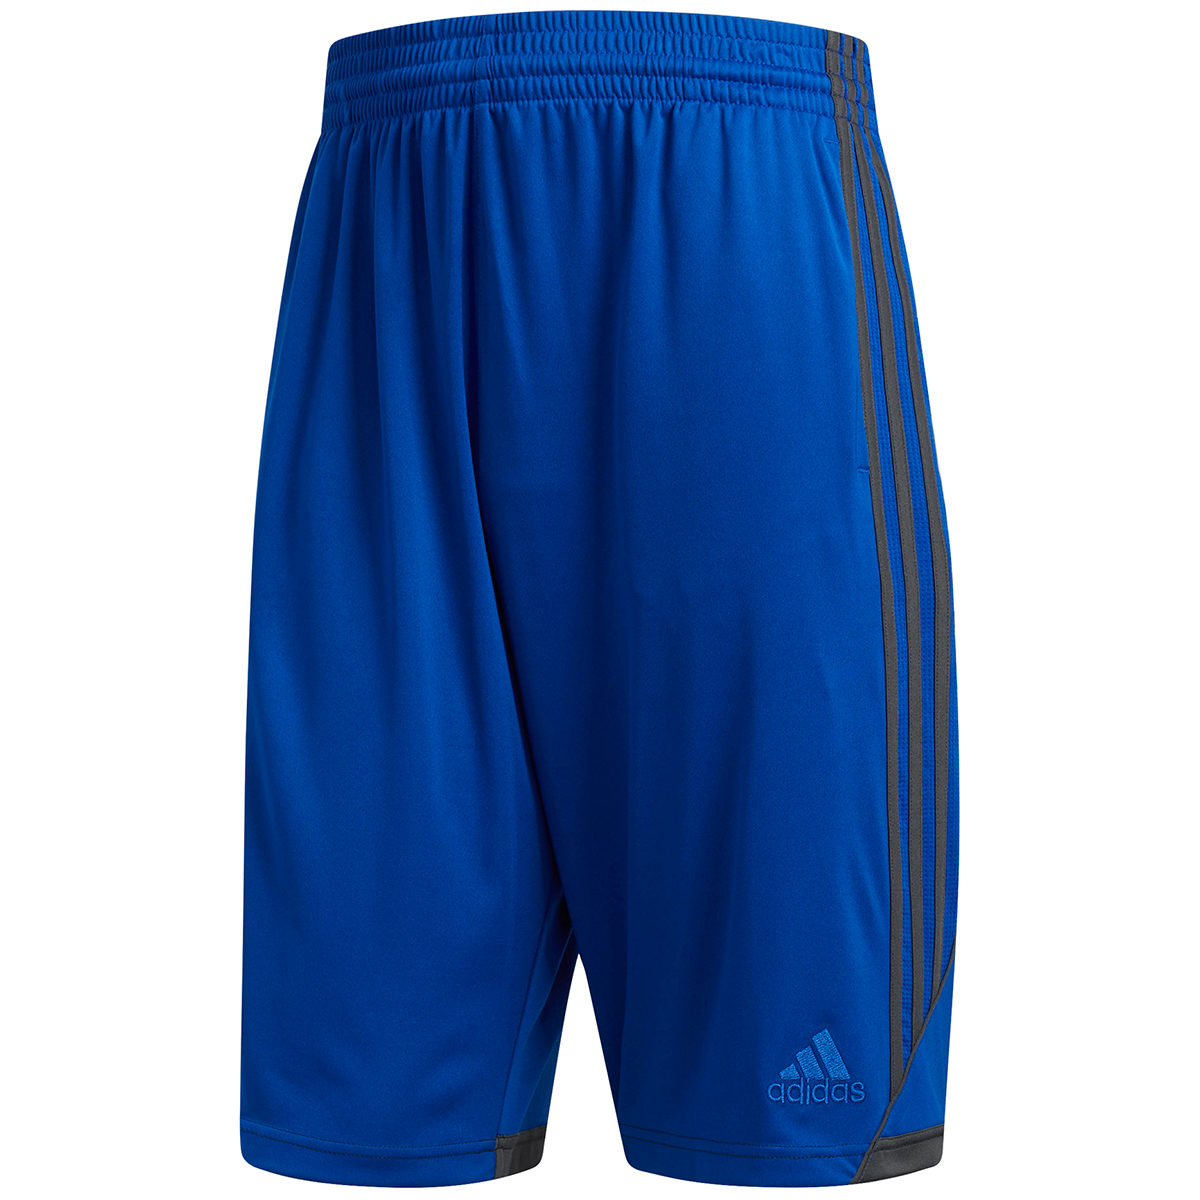 Adidas Men's 3G Speed Basketball Shorts - Blue, XL